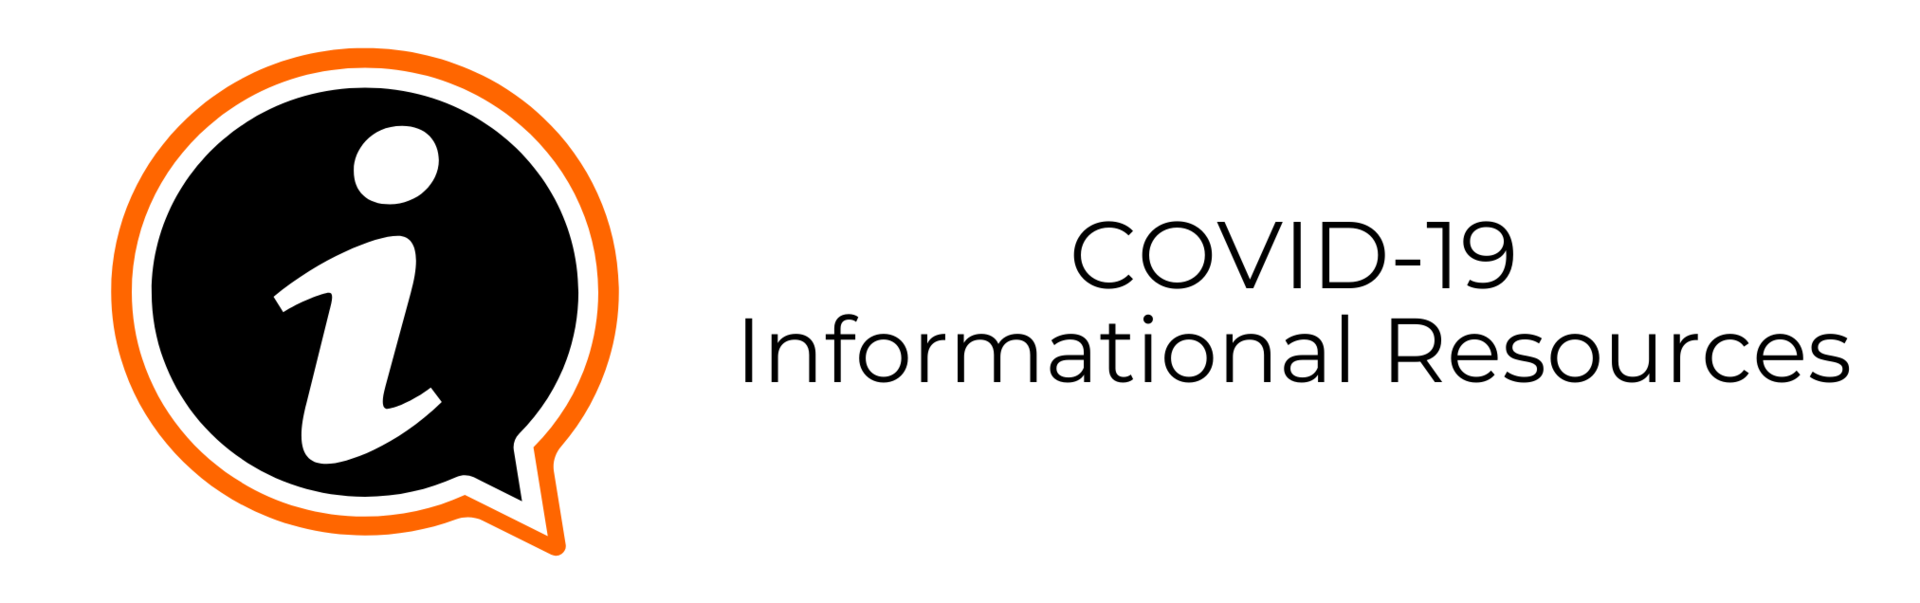 COVID-19 Info Resources